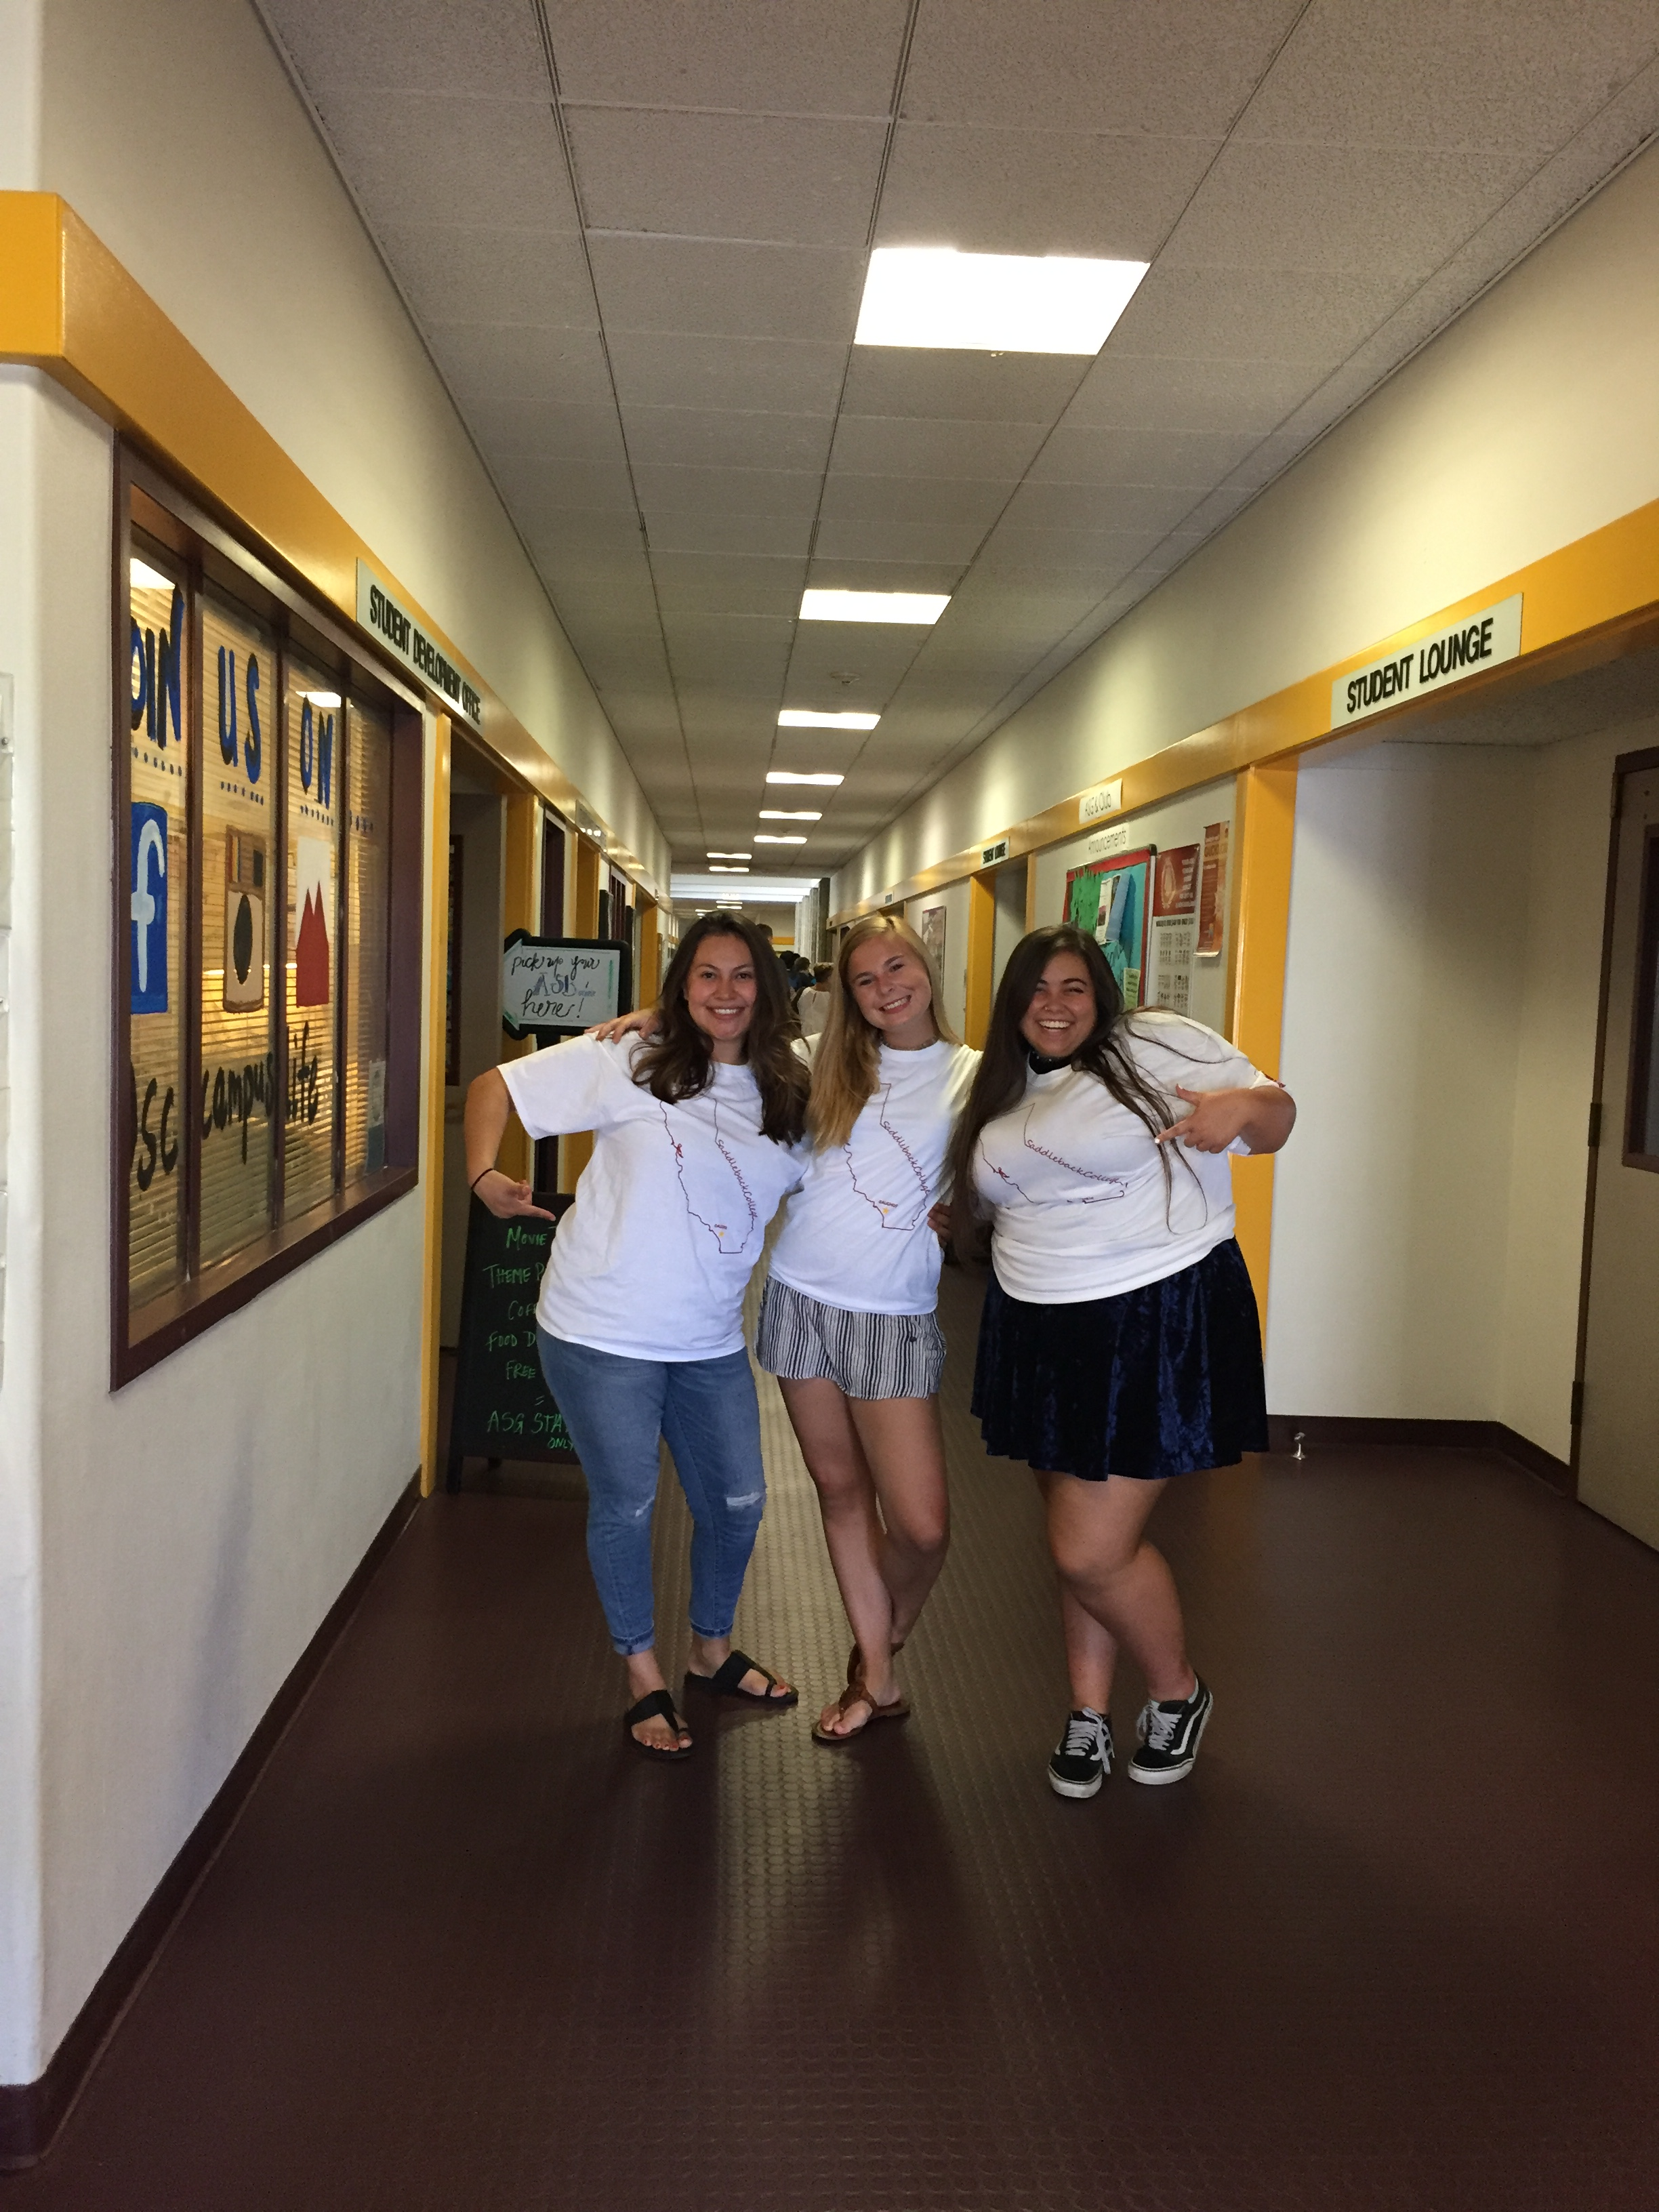 Mayra, Kiki, and Lucy in saddleback shirts